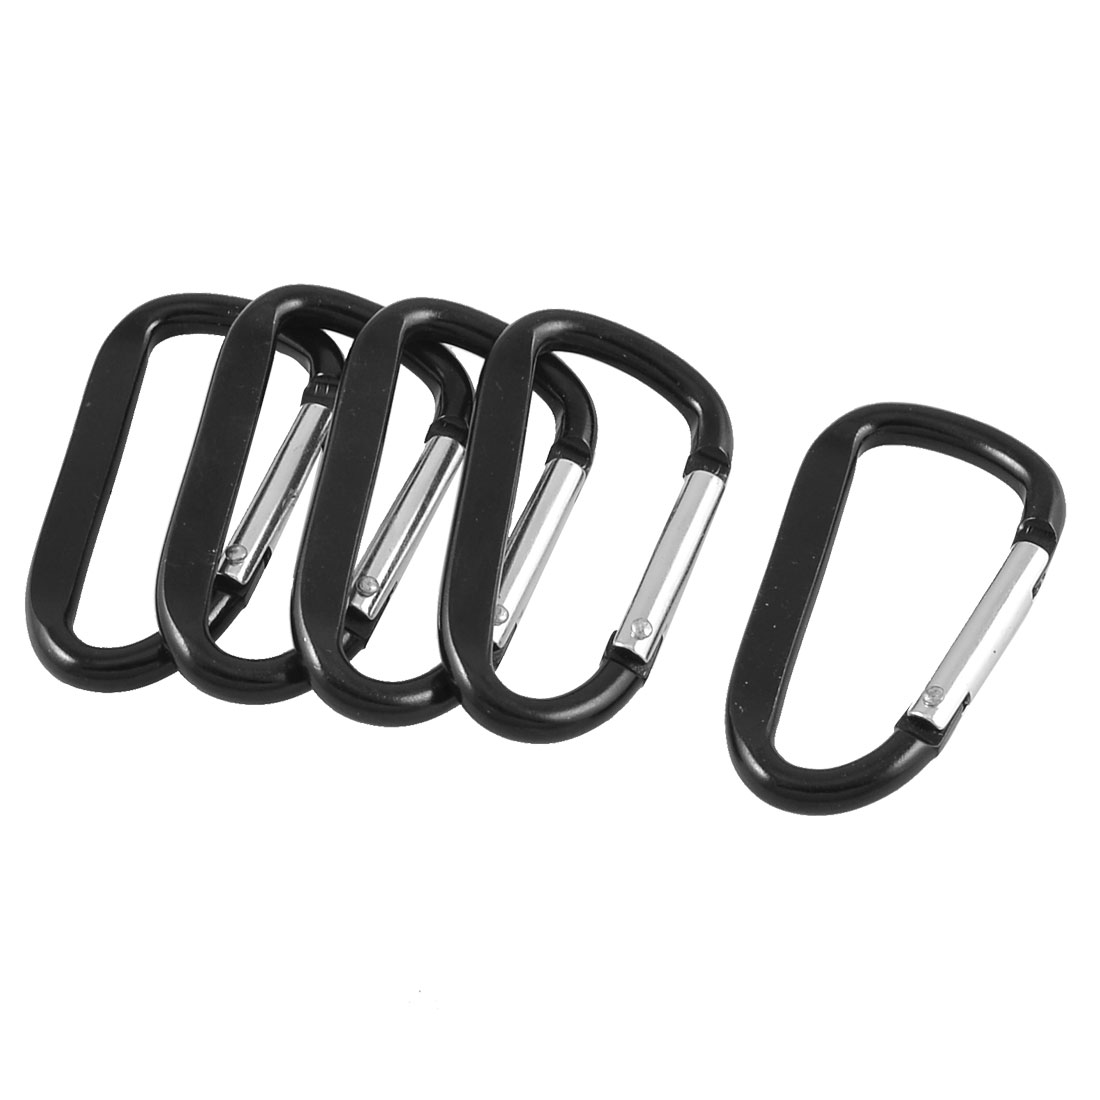 4 Pcs Black Silver Tone D Shaped Aluminum Alloy Carabiner Hook